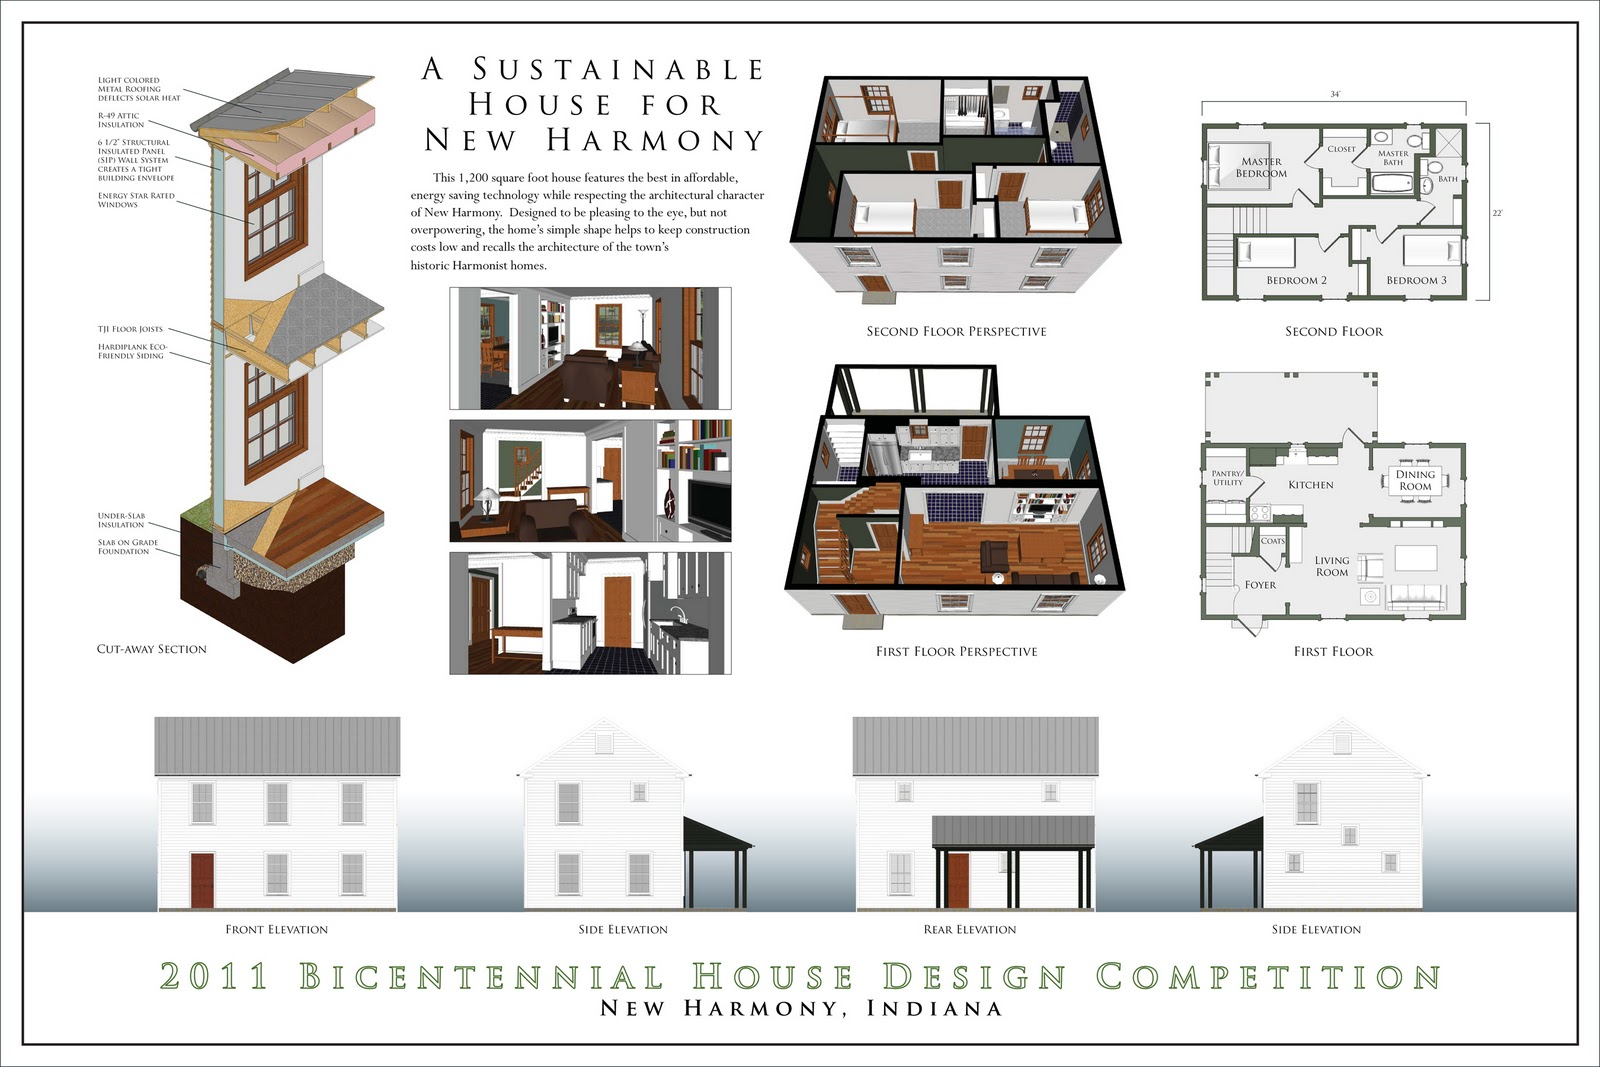 Beautiful home design competition images decoration for Small house design competition